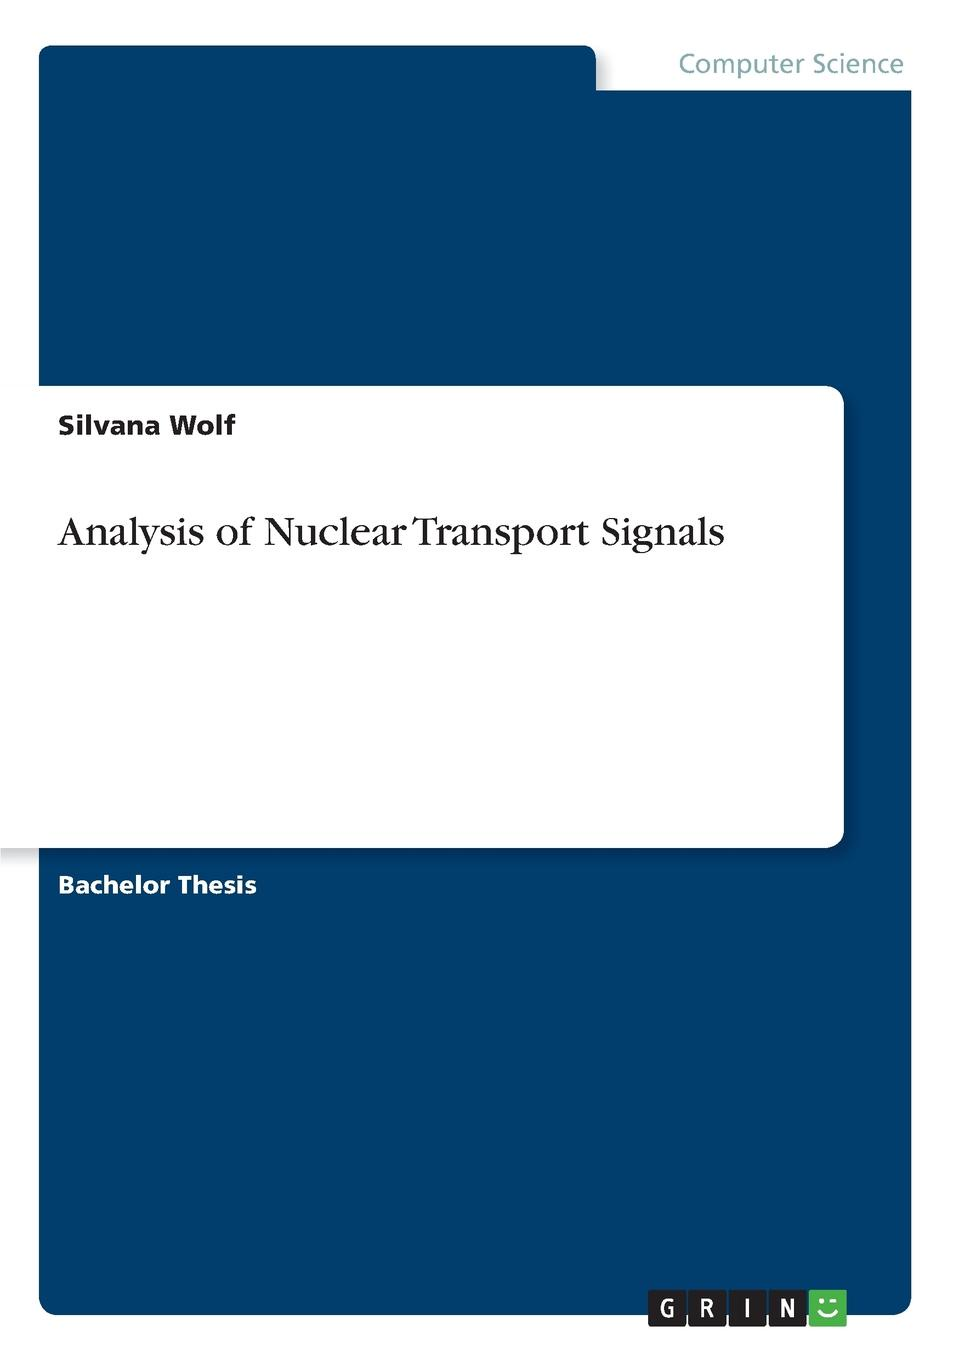 Silvana Wolf Analysis of Nuclear Transport Signals sjoden glenn e foundations in applied nuclear engineering analysis